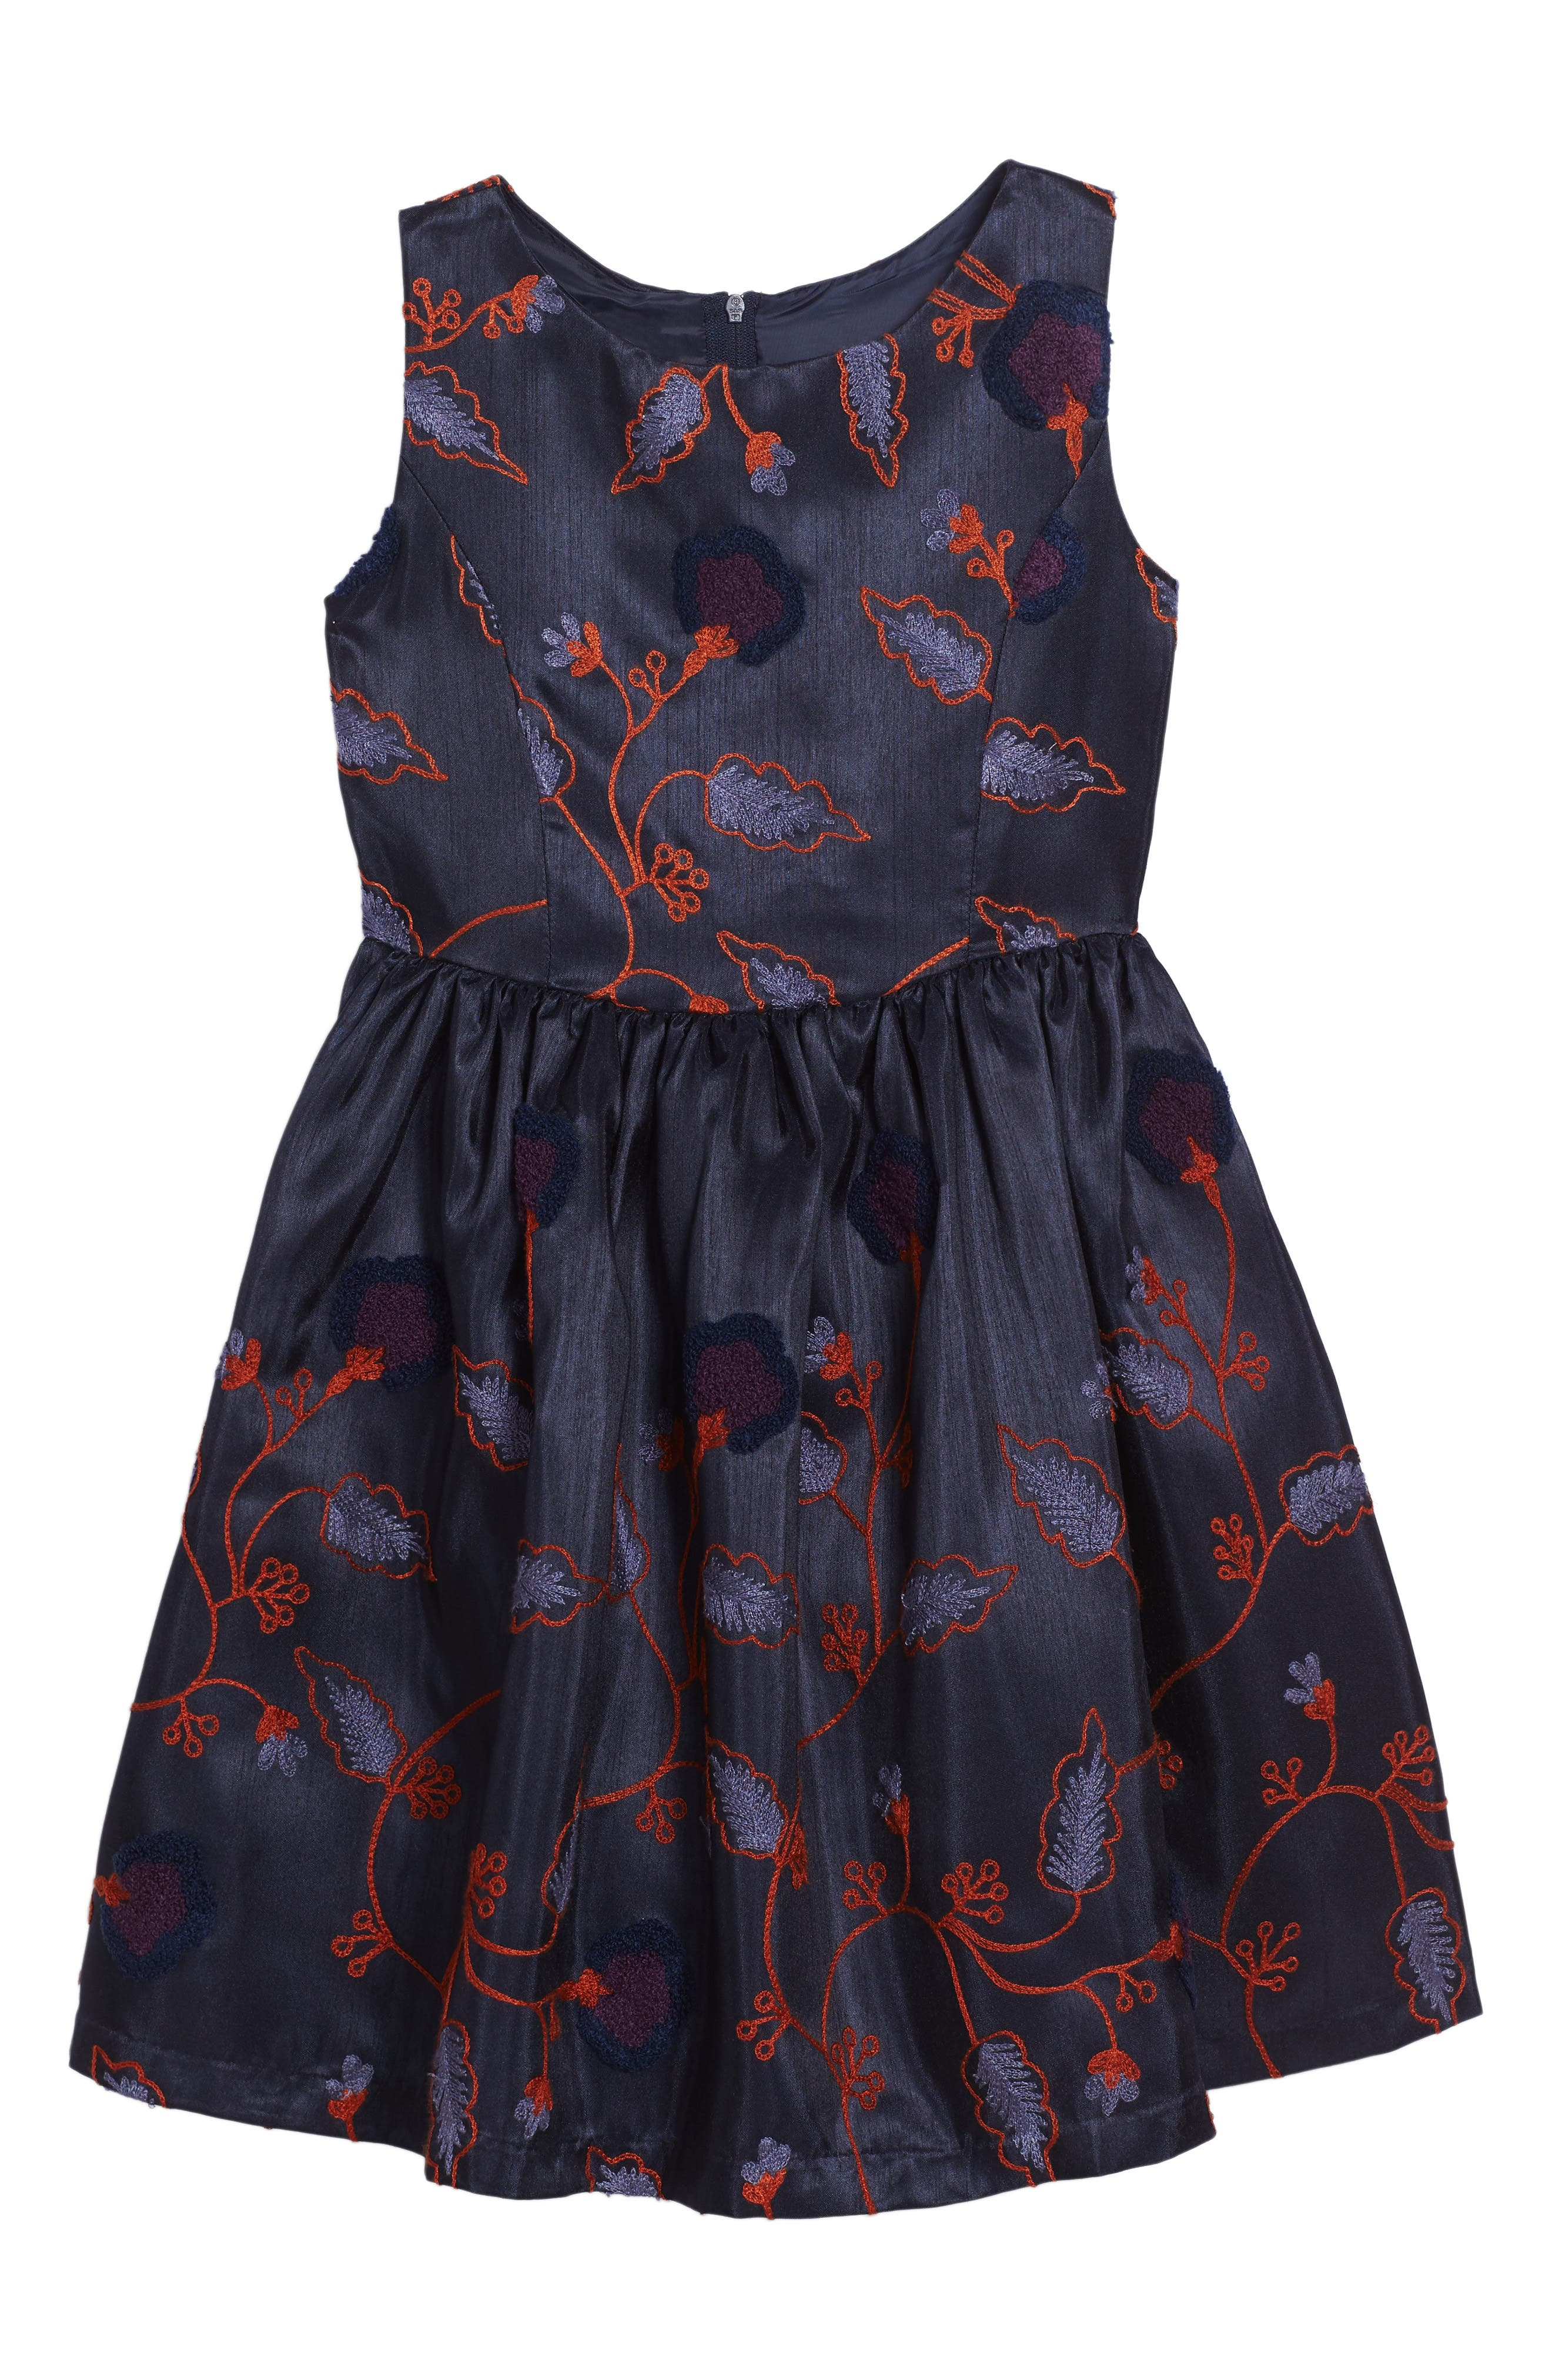 Embroidered Floral Dress,                             Main thumbnail 1, color,                             410